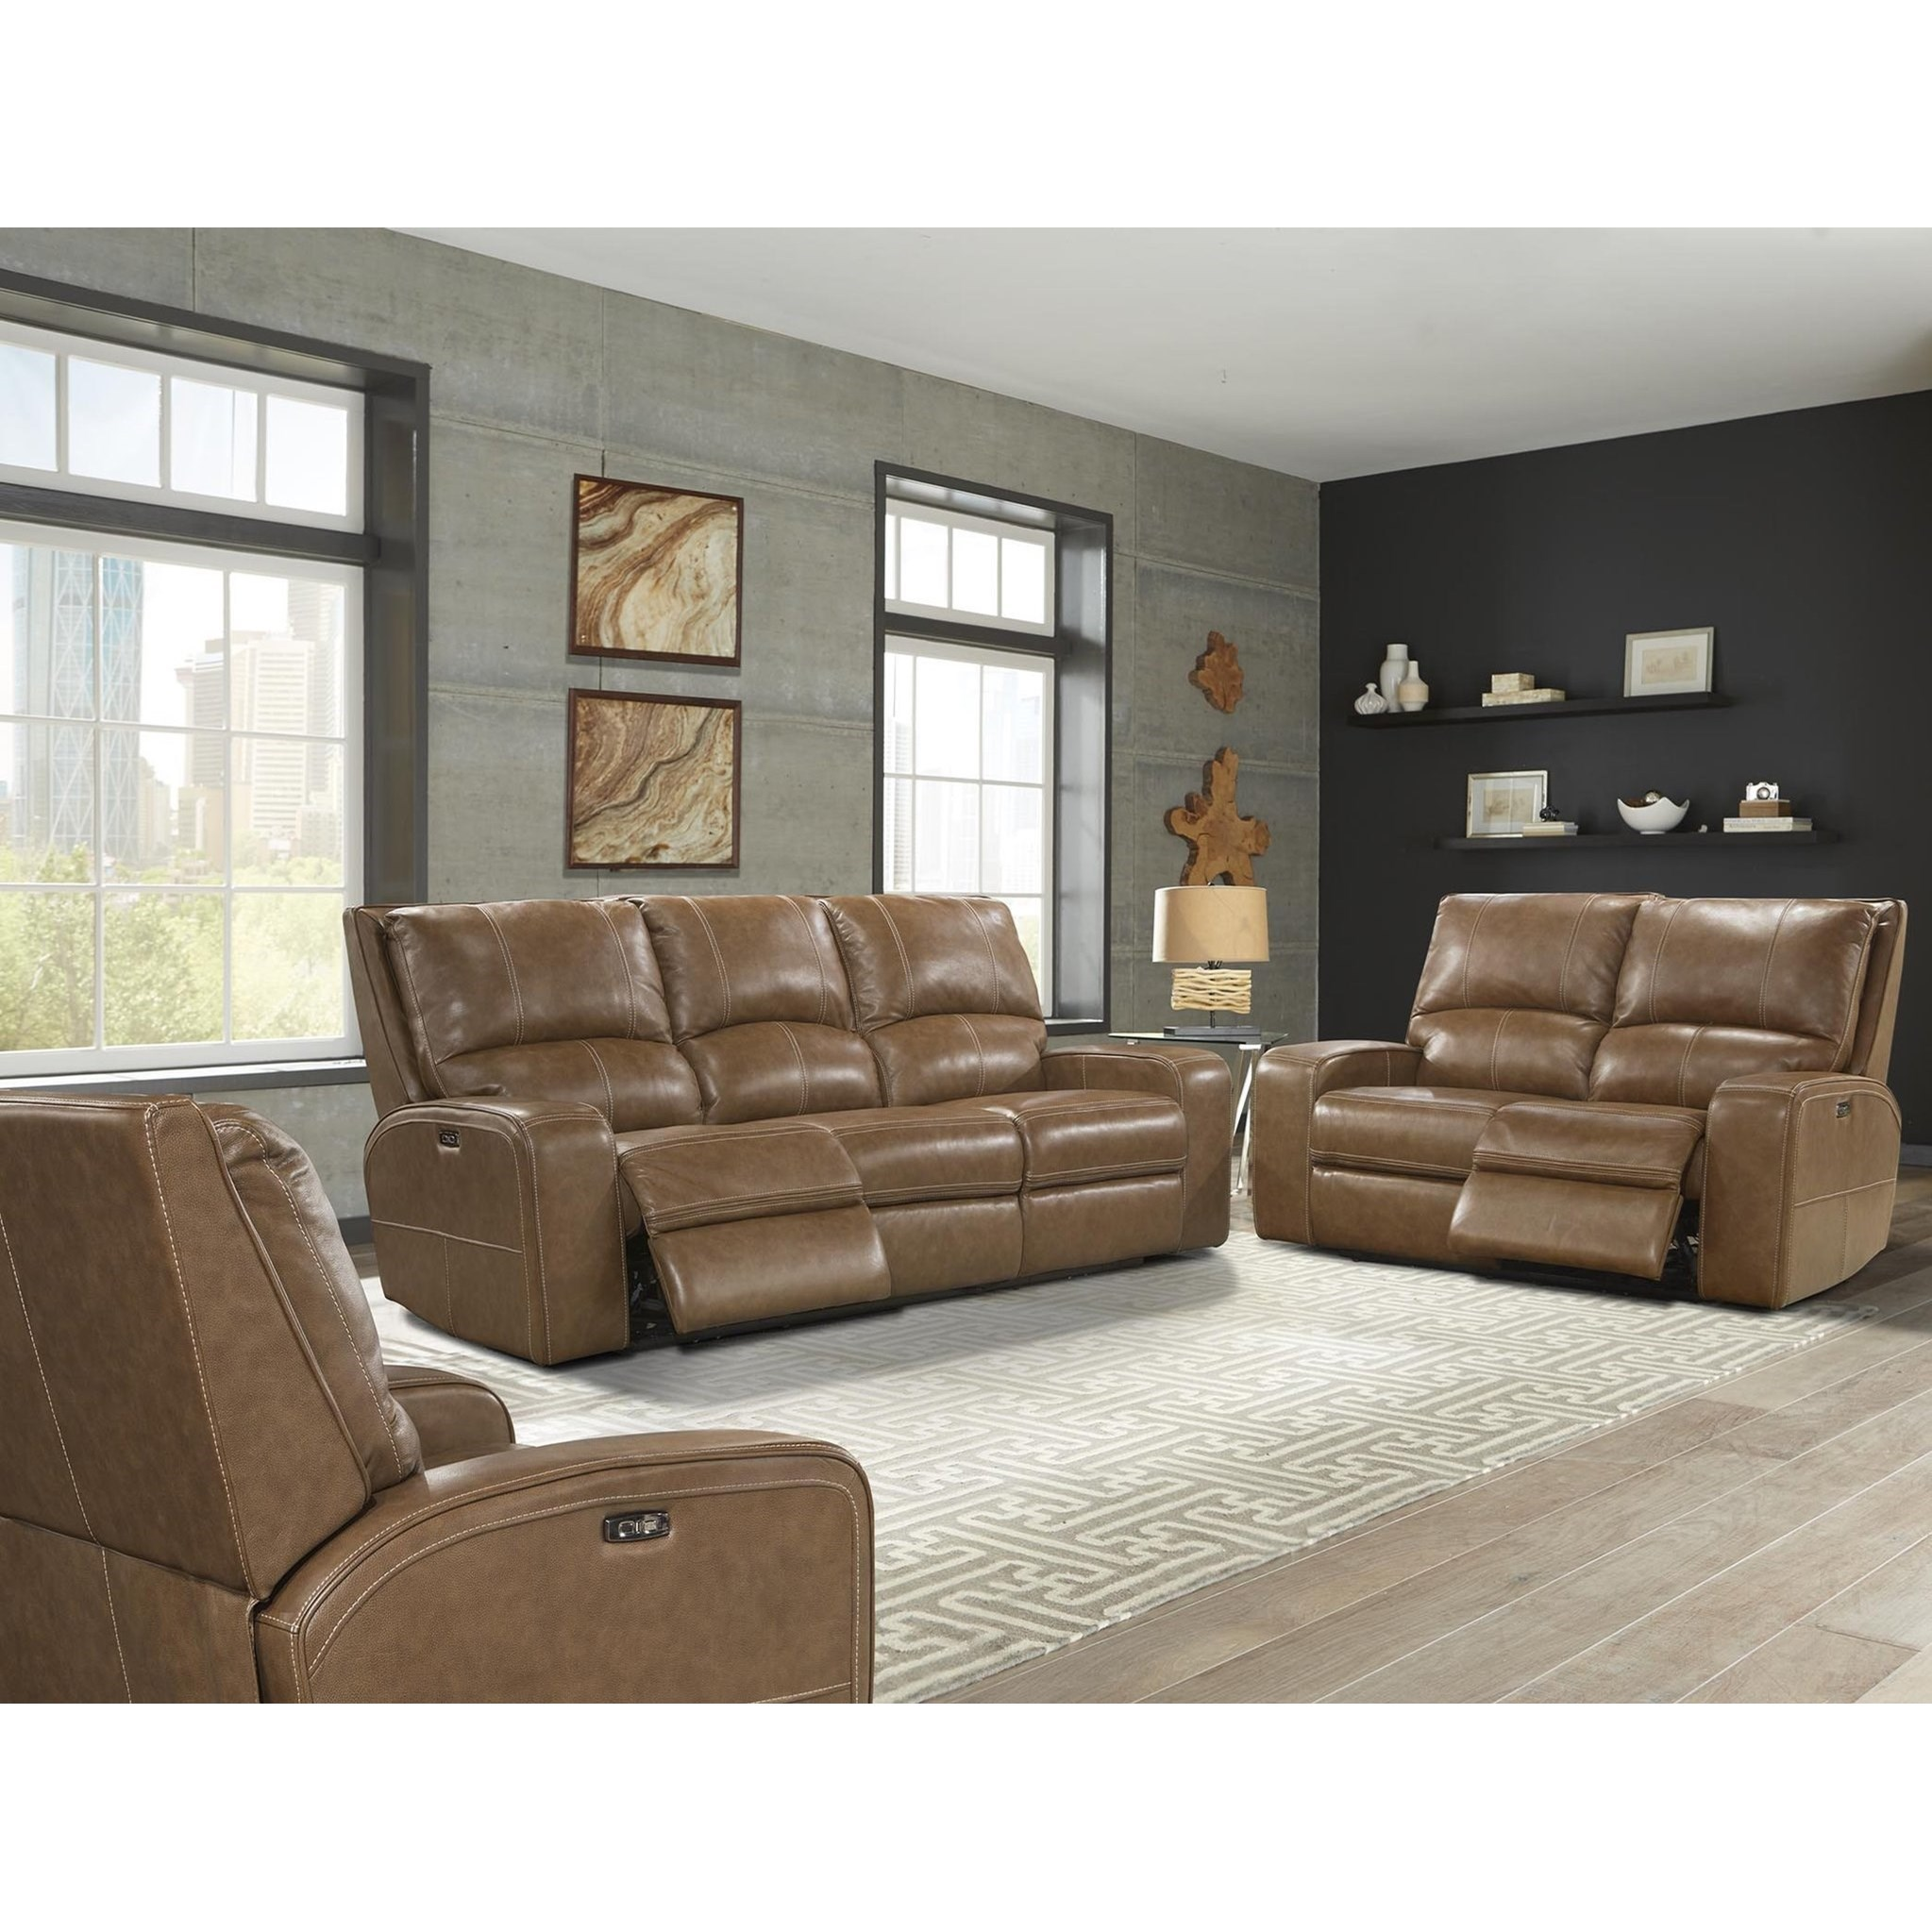 Swift Power Reclining Living Room Group by Parker Living at Simply Home by Lindy's